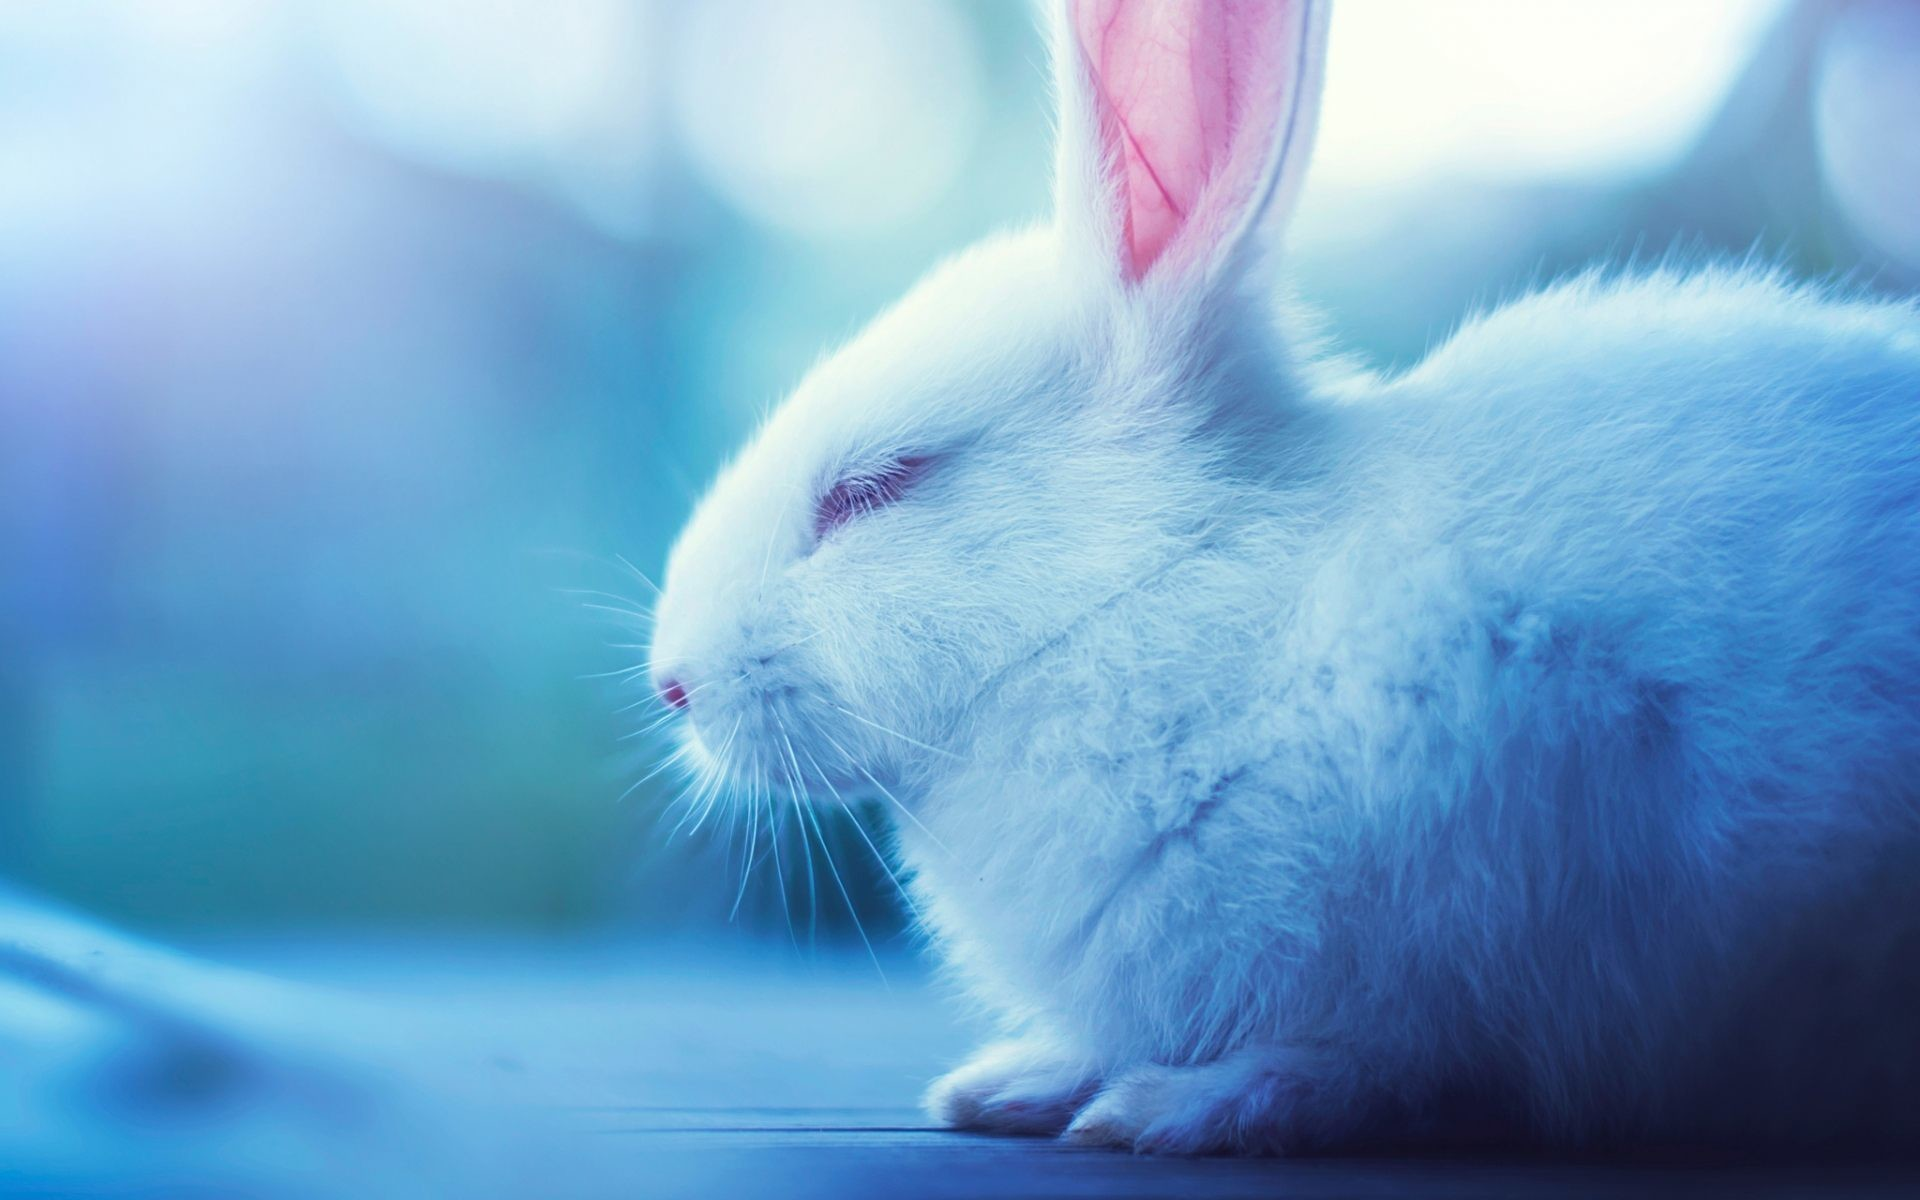 Cute Bunnies Wallpaper 65 Images